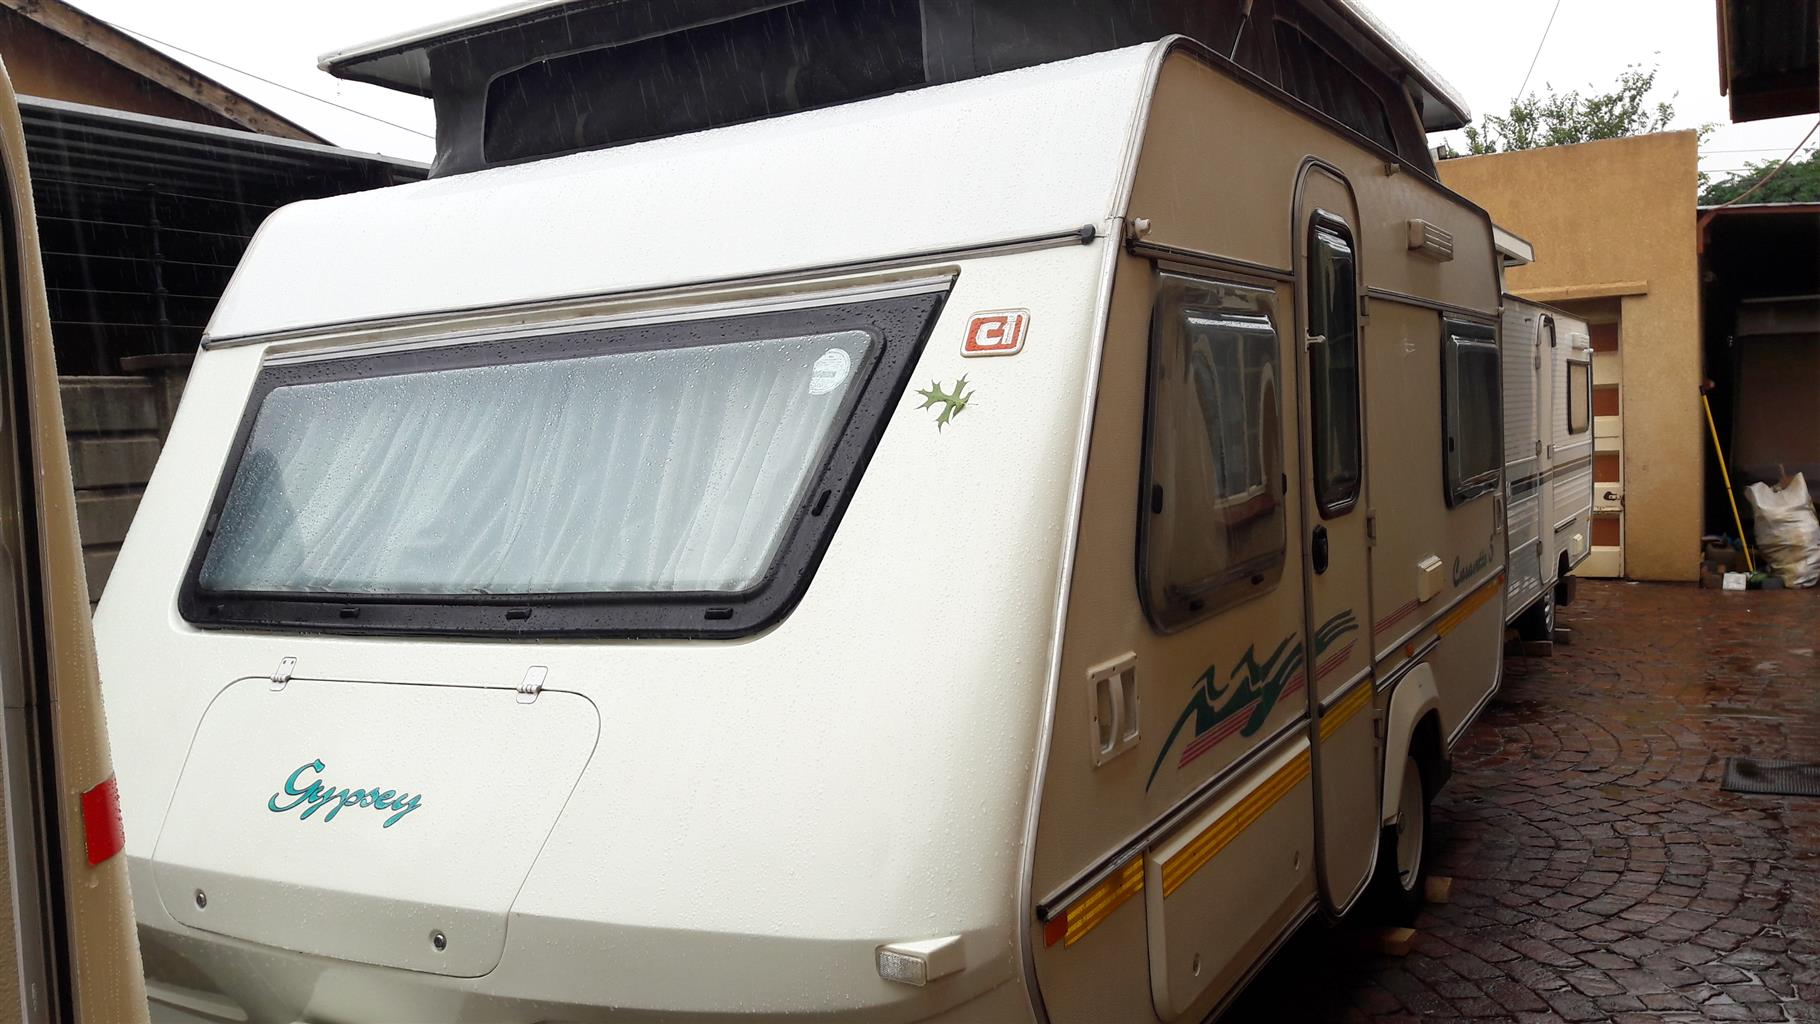 GYPSEY CARAVETTE 5 1995 MODEL WITH FULL TENT AND RALLY TENT CONTACT 0835818449 I